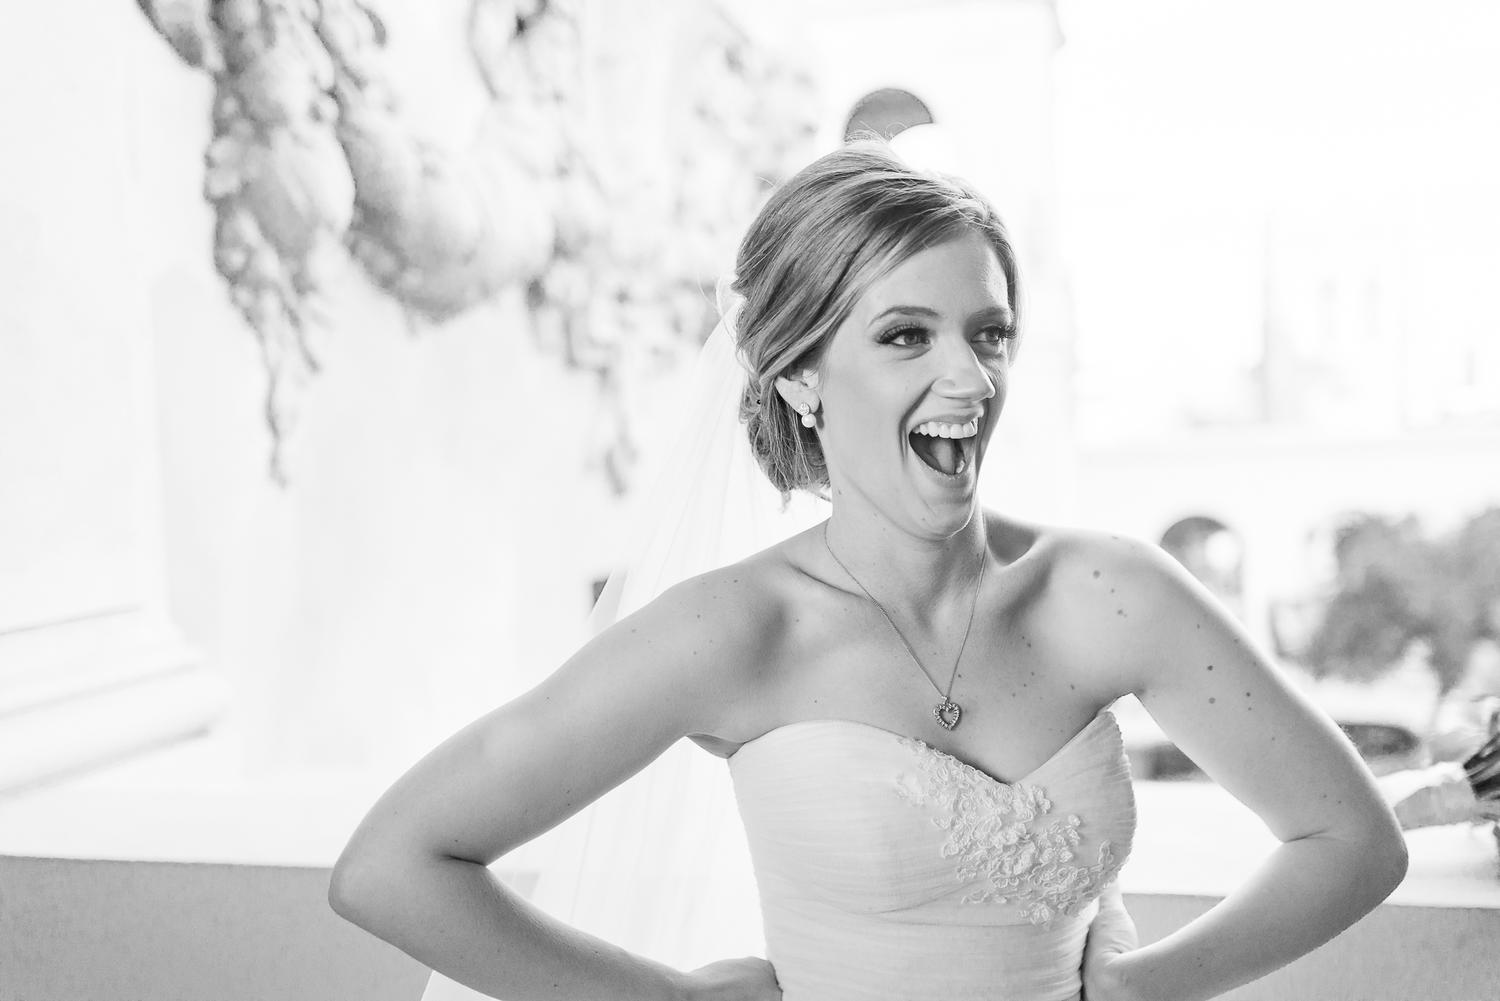 BRITTNEY BRIDAL PHOTOS